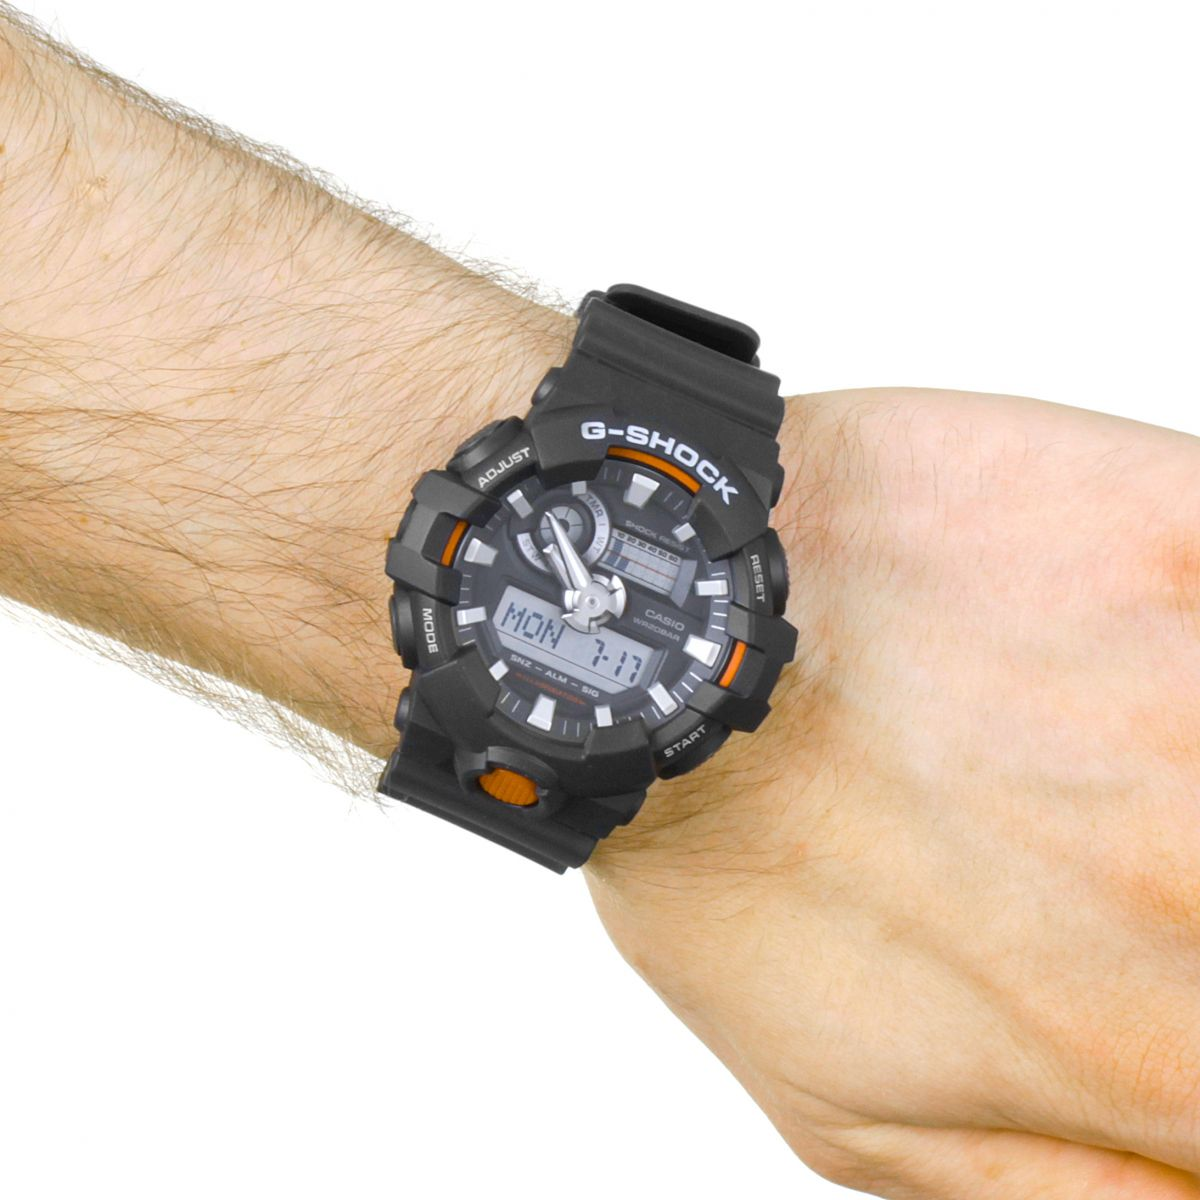 giai-dap-thac-mac-g-shock-co-dong-ho-co-khong